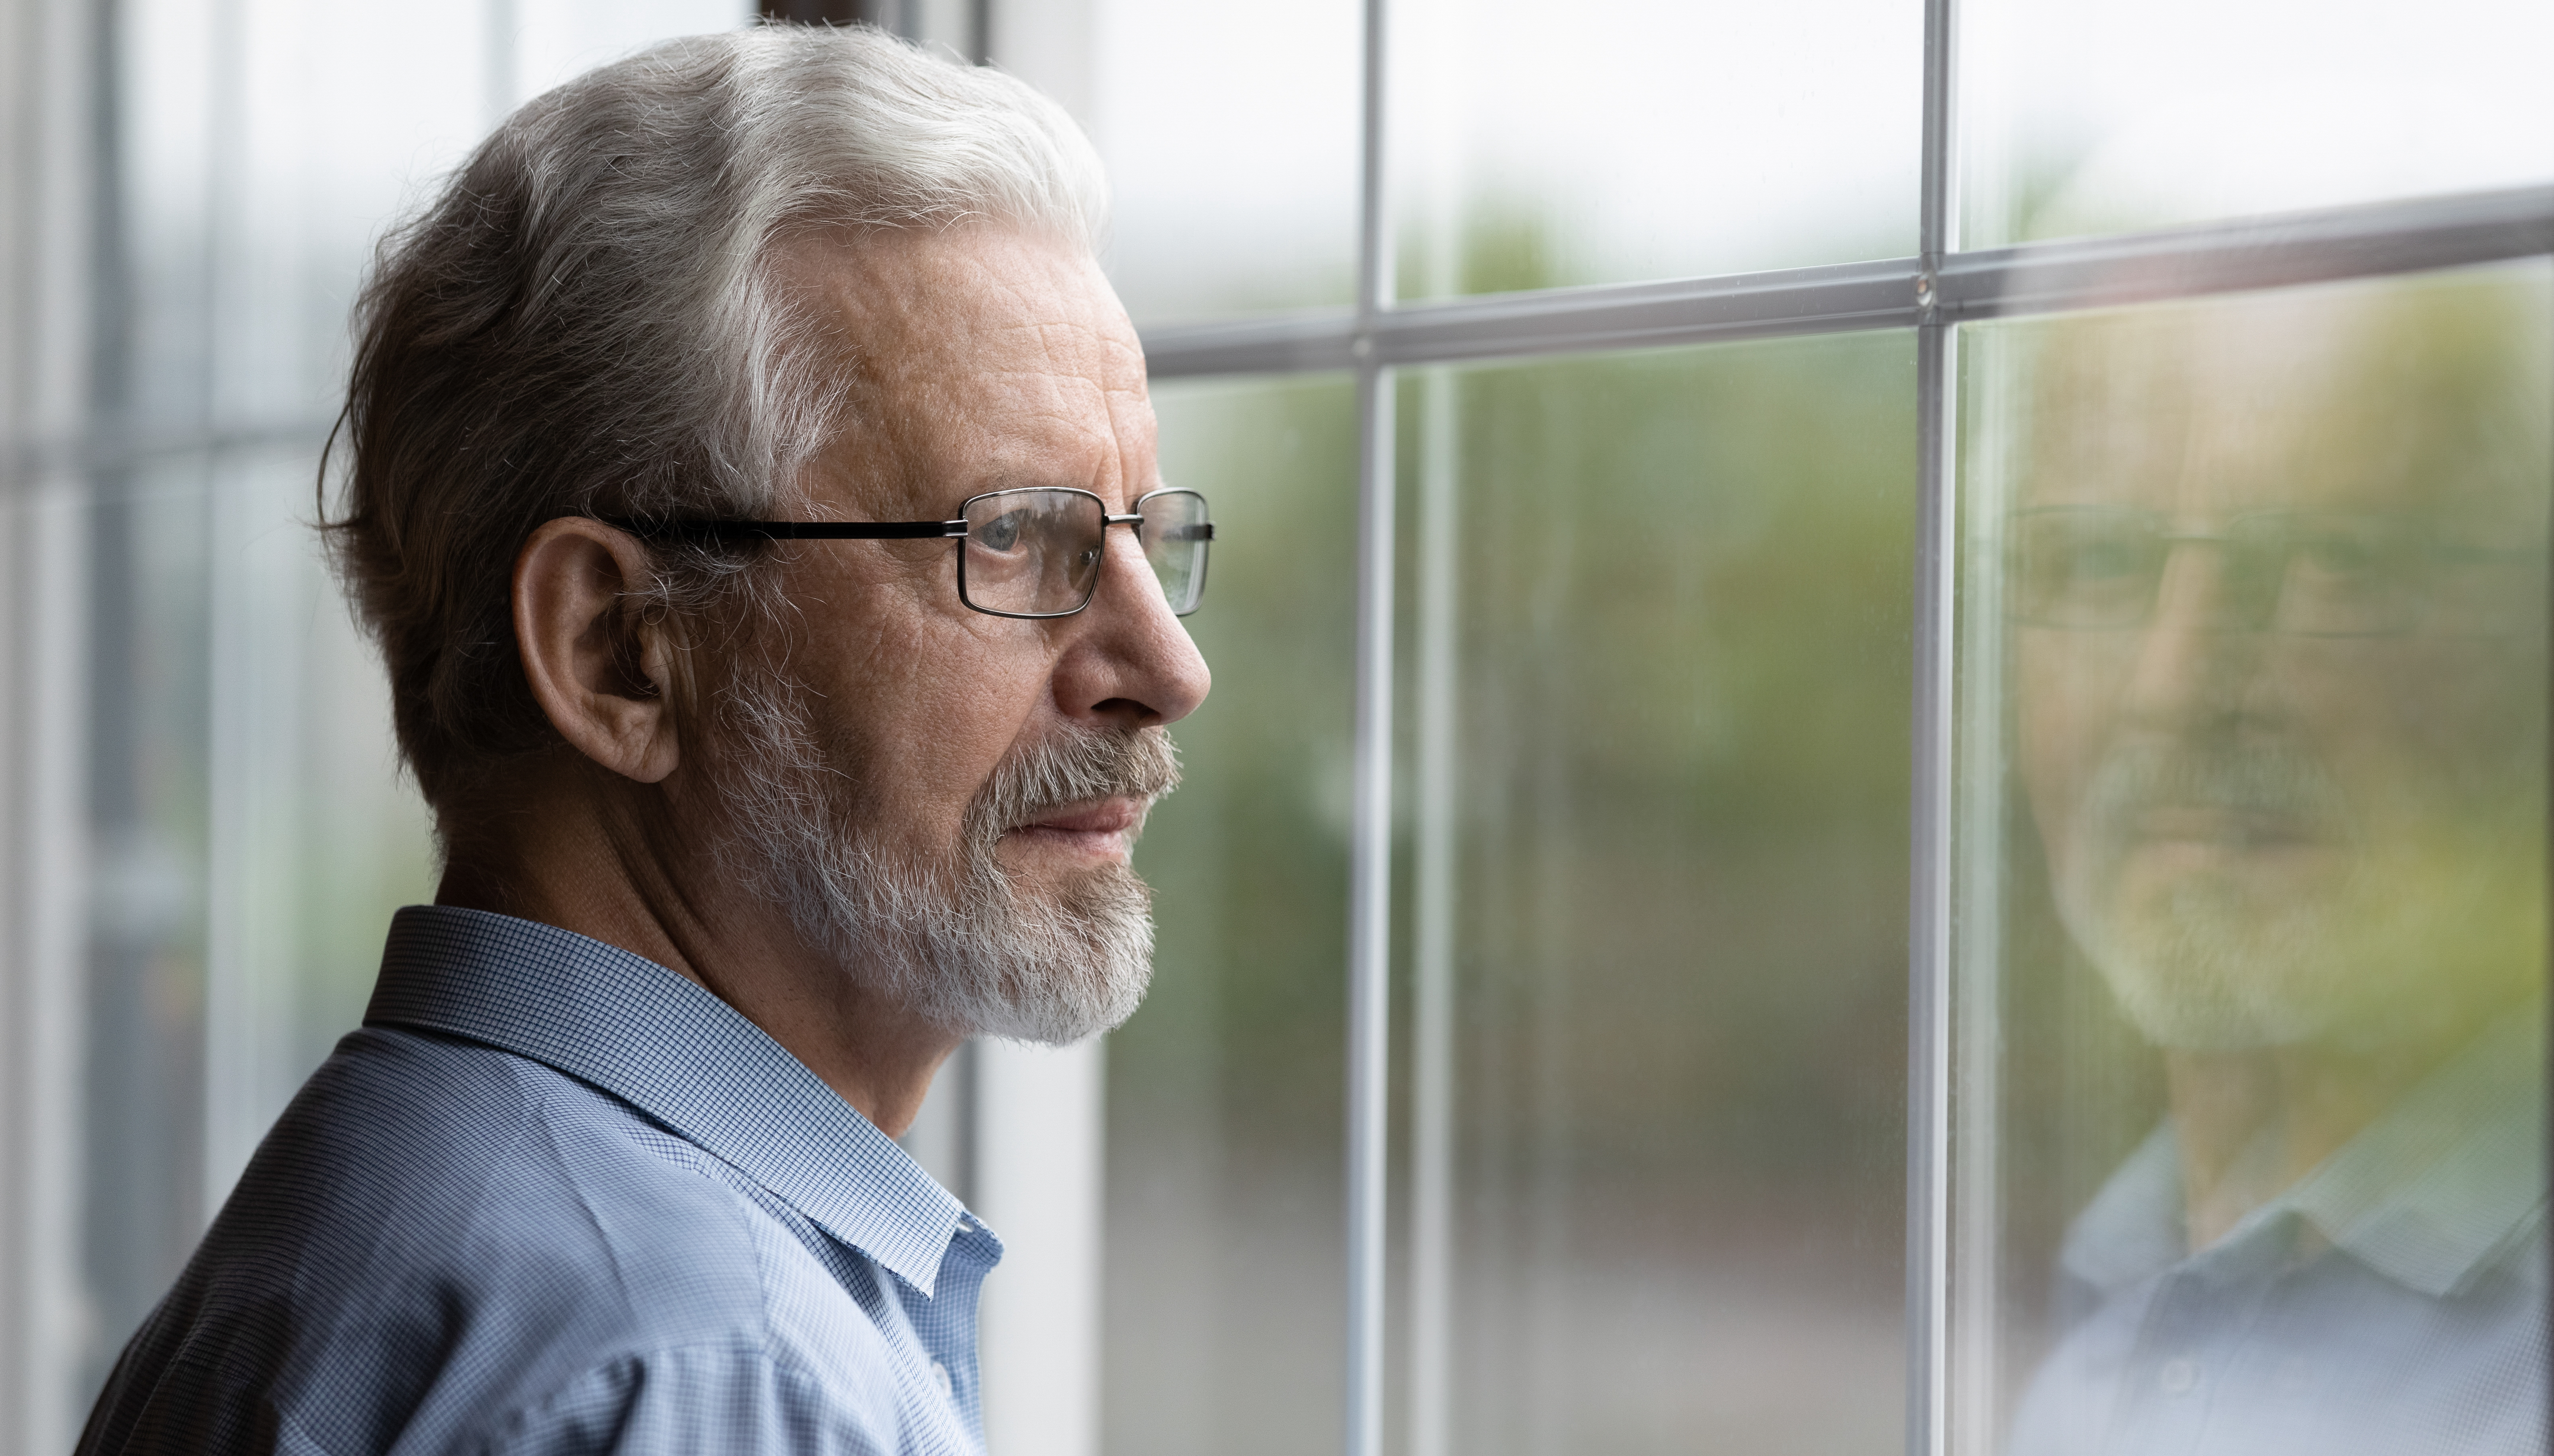 Man looking out miami window